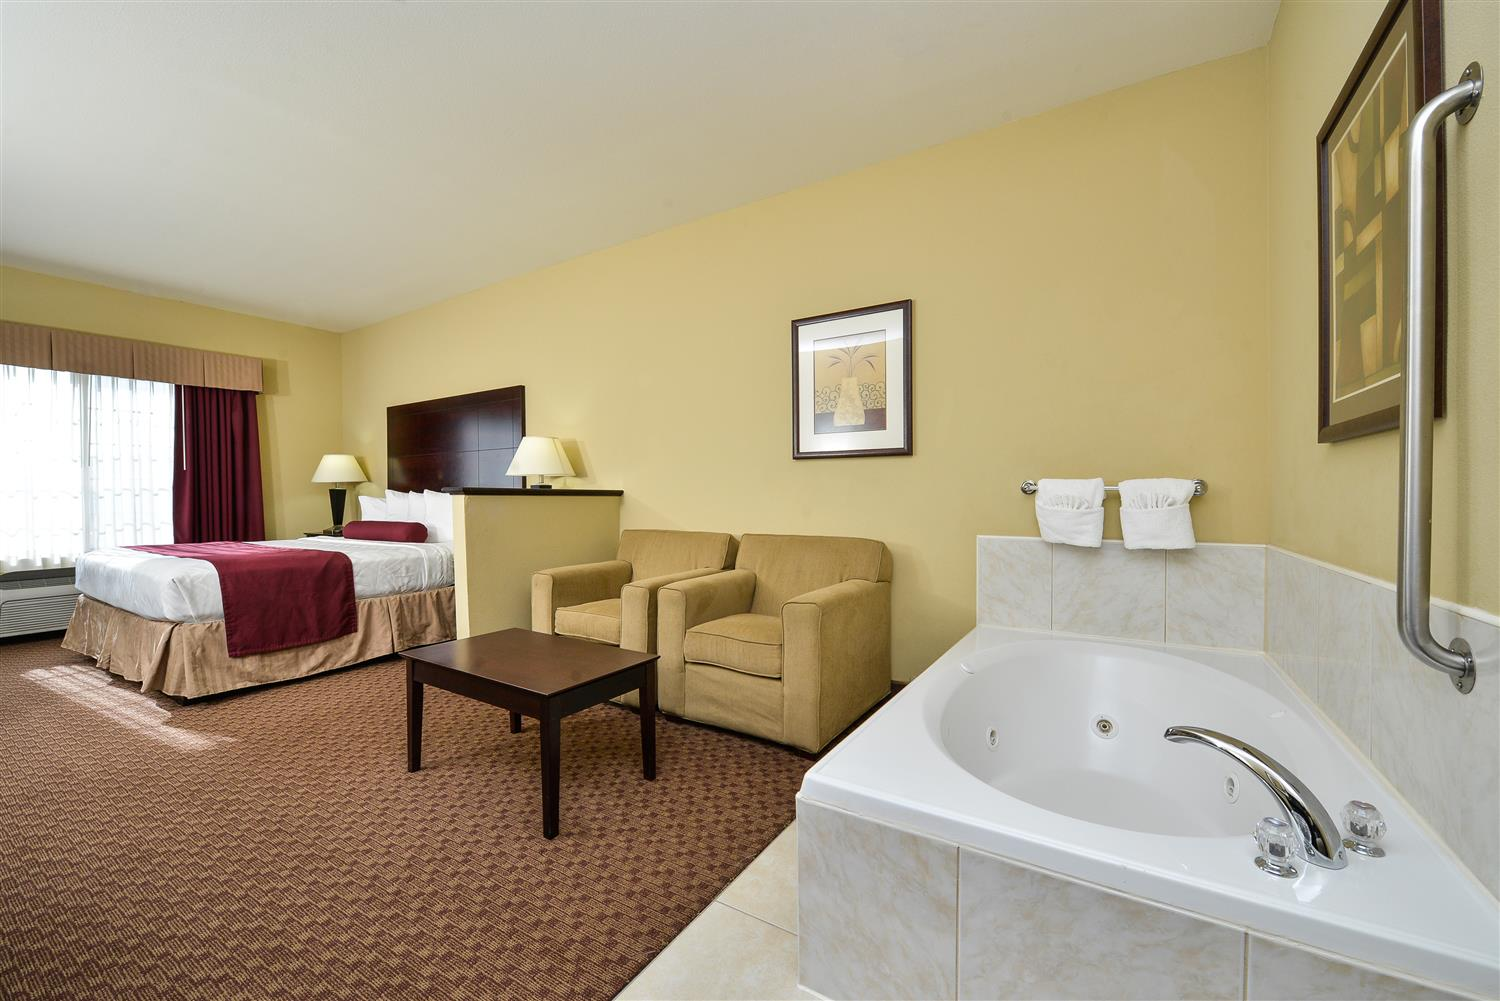 Treat Yourself And A Special Companion To Our Whirlpool Suite Perfect For Anniversaries Or Escapes